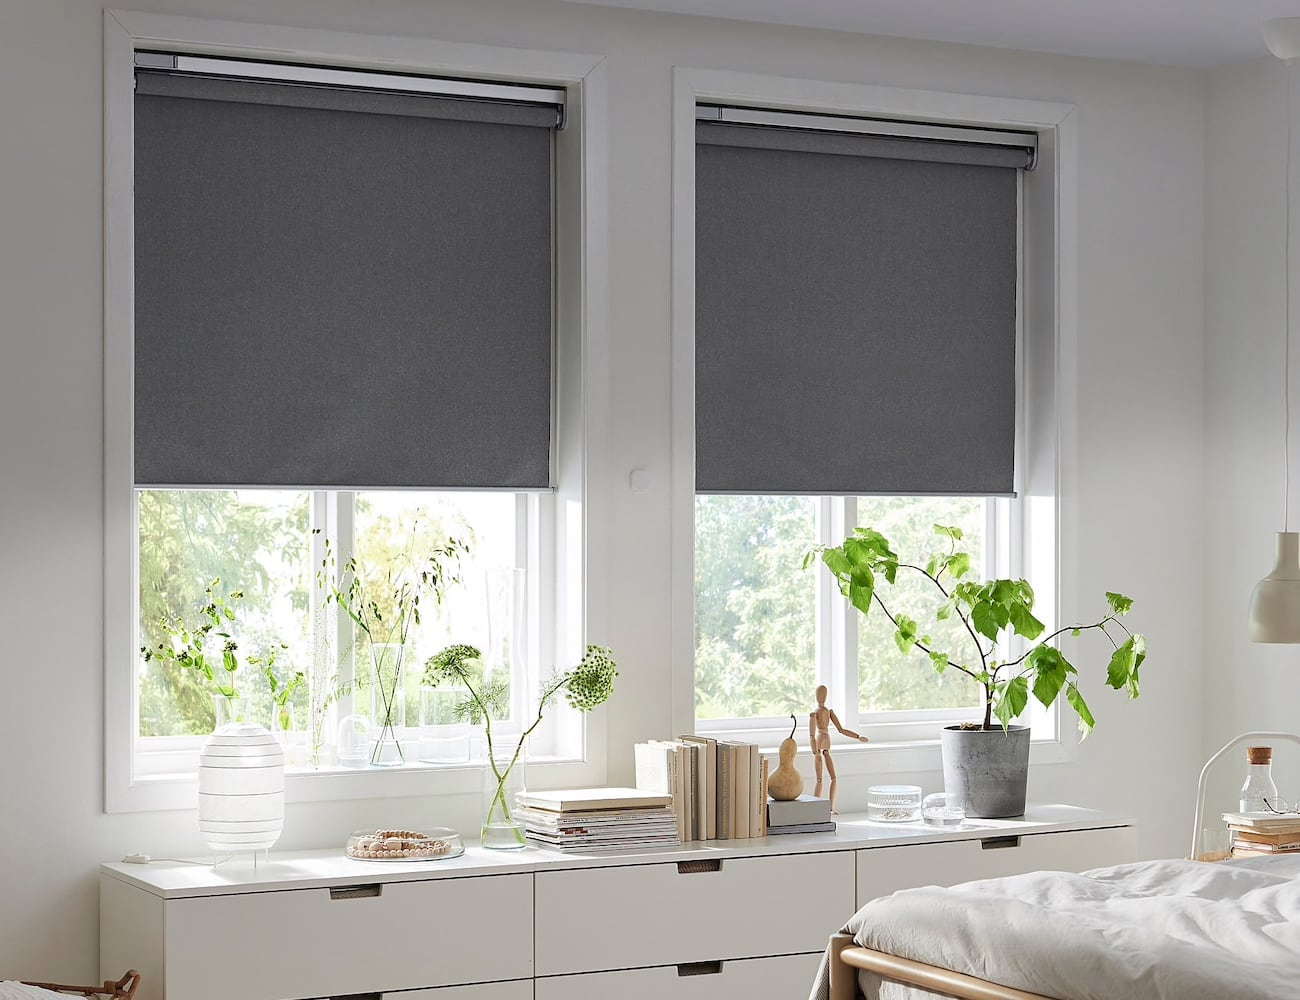 Ikea S Smart Window Blinds Let You Control Natural Light